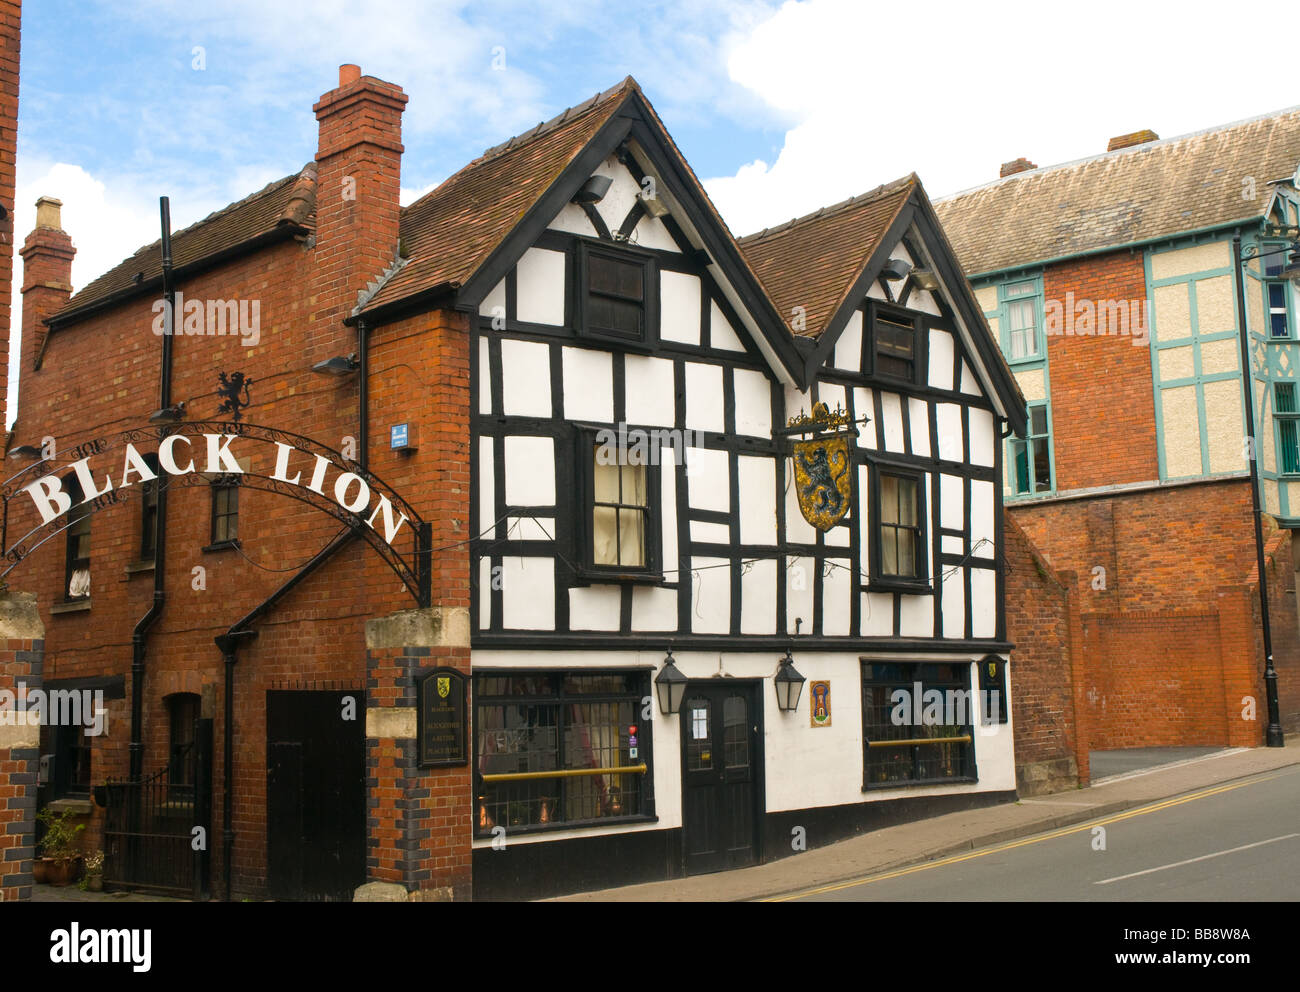 The Black Lion pub Hereford reputedly haunted England - Stock Image